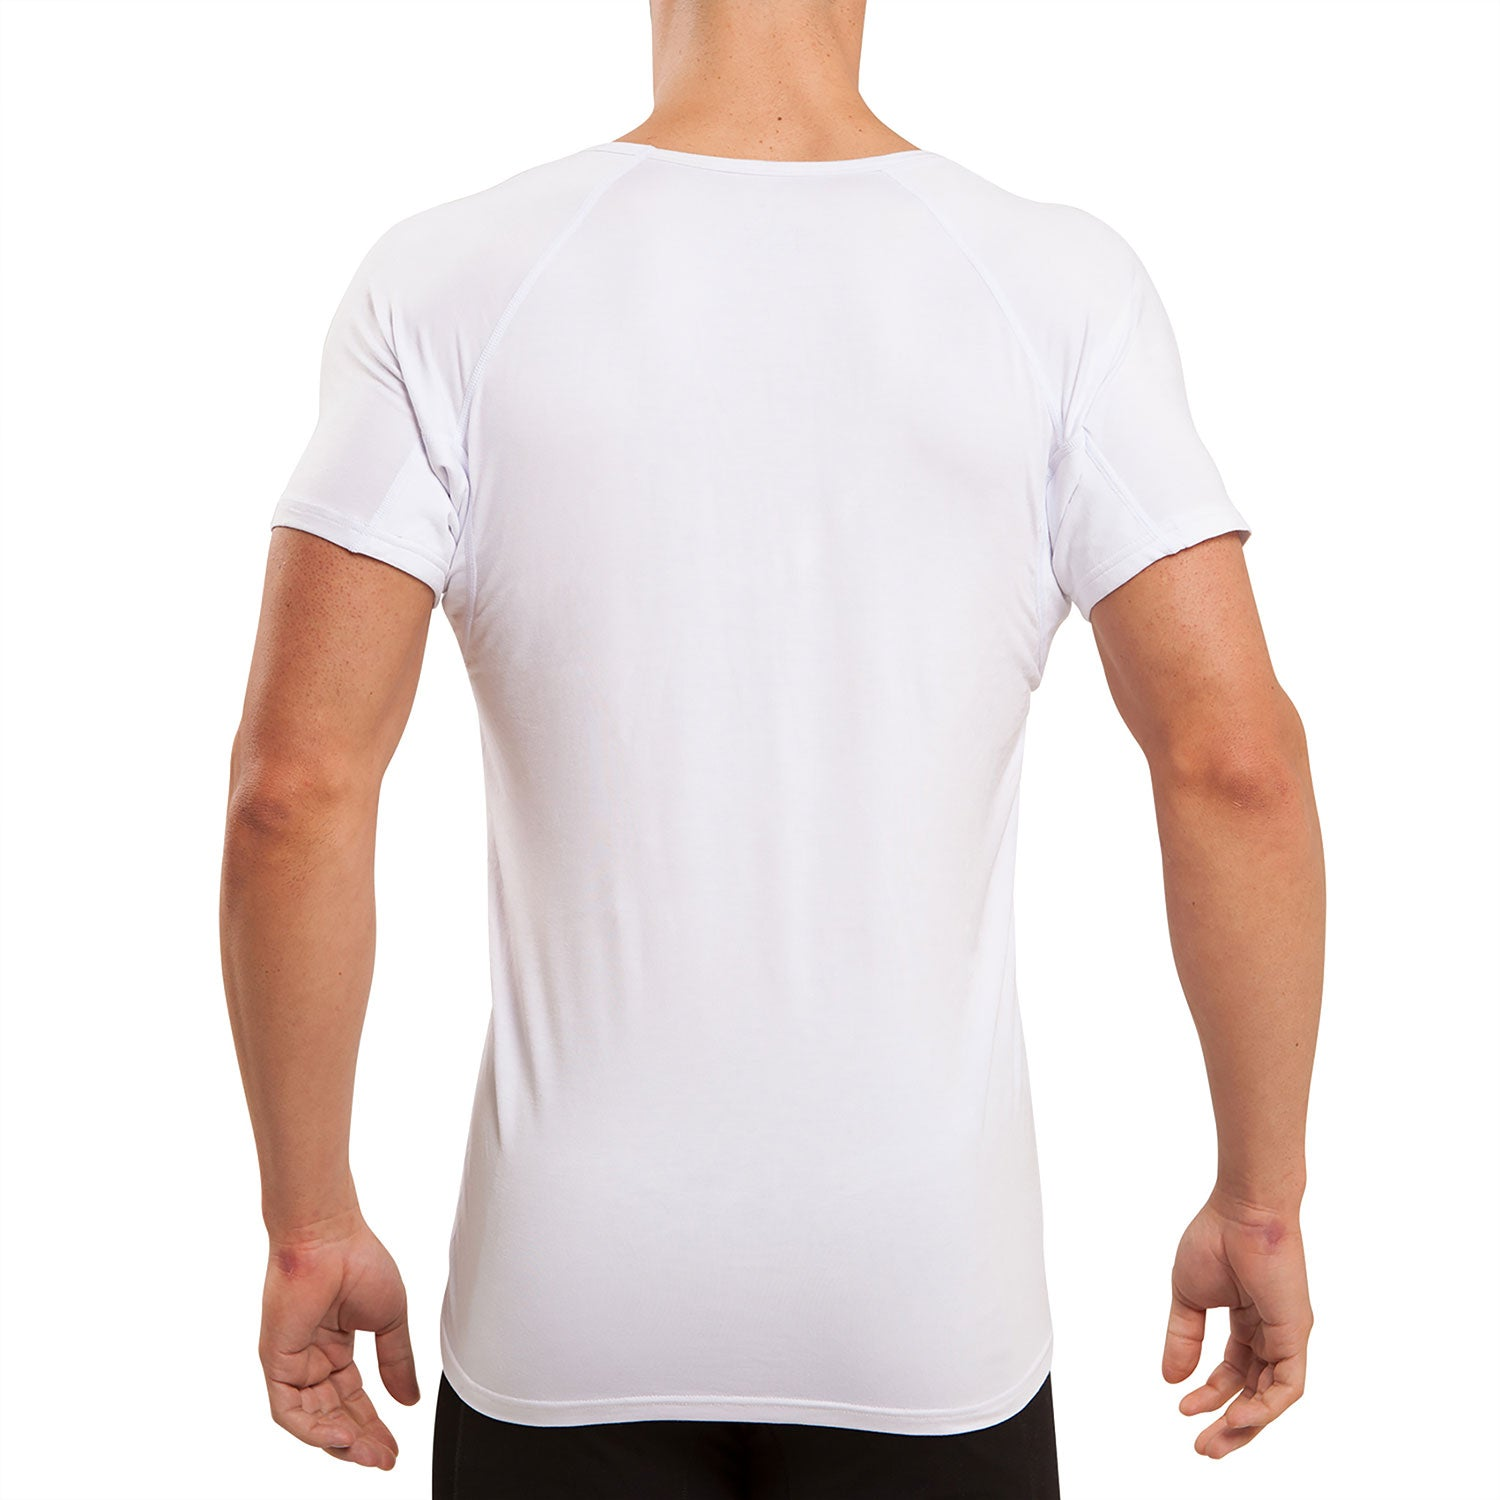 Sweat Defense Undershirt | V-Neck | Back & Underarm Sweat Proof Micro Modal - Ejis, inc.